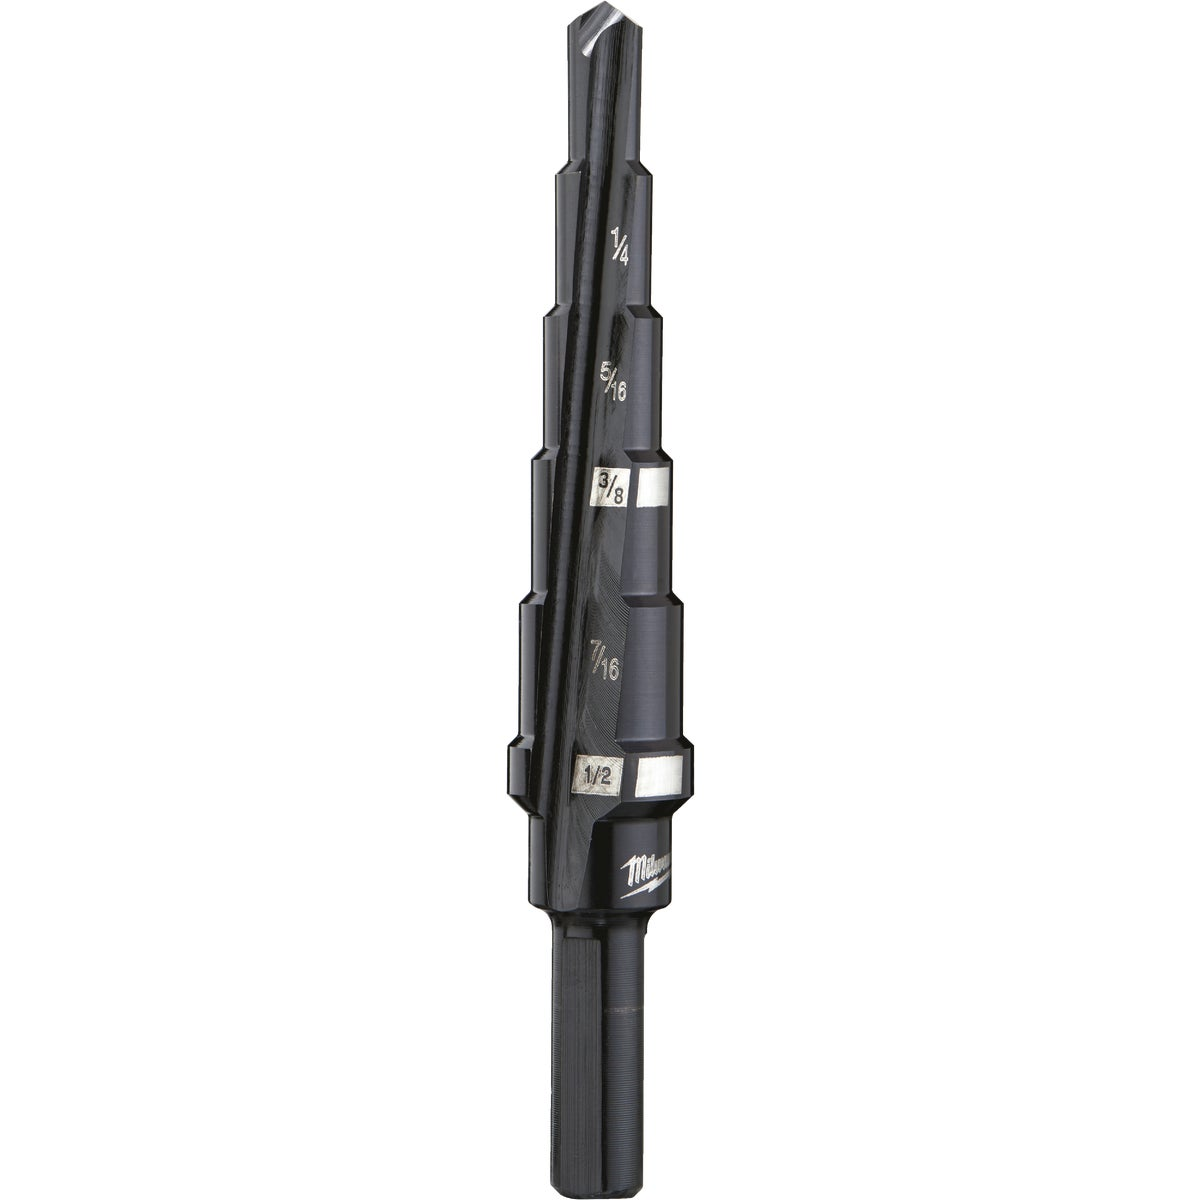 "3/16-1/2"" STEP DRILL BIT - 48-89-8955 by Milwaukee Accessory"